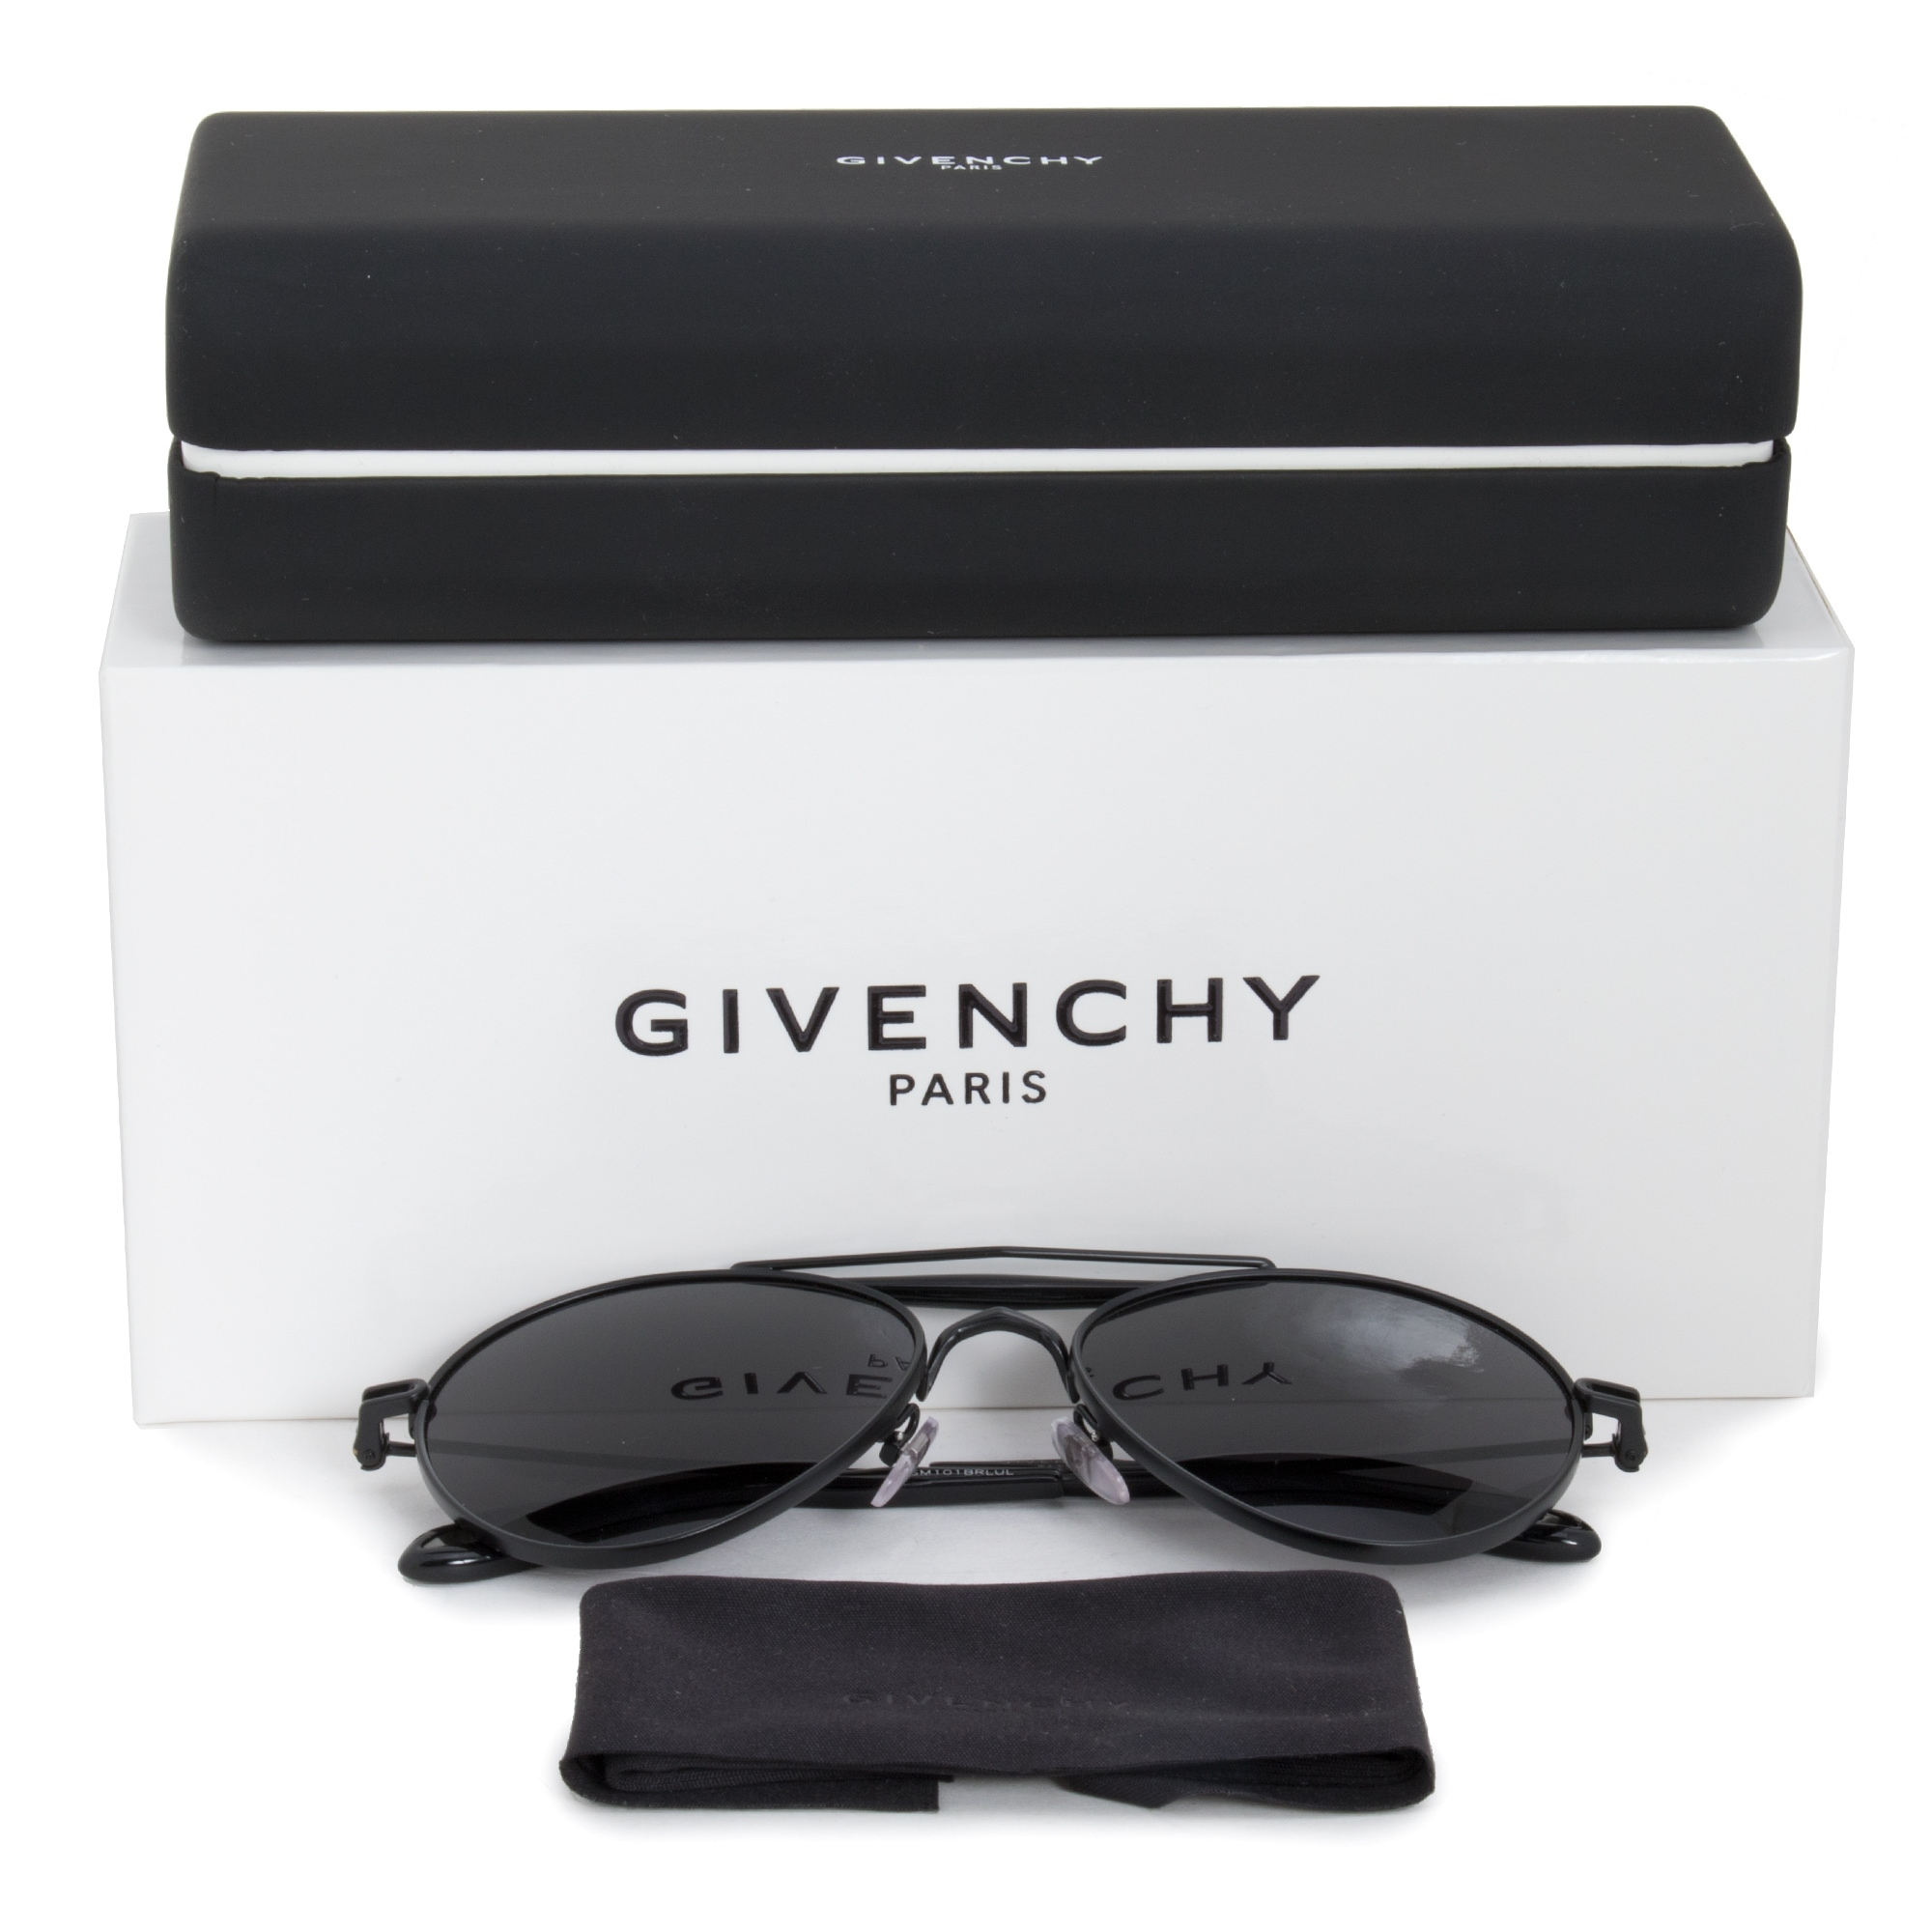 9ba3a04cf23bf Shop Givenchy Aviator Sunglasses GV7012 S PDE E5 56 - On Sale - Free  Shipping Today - Overstock - 21408755